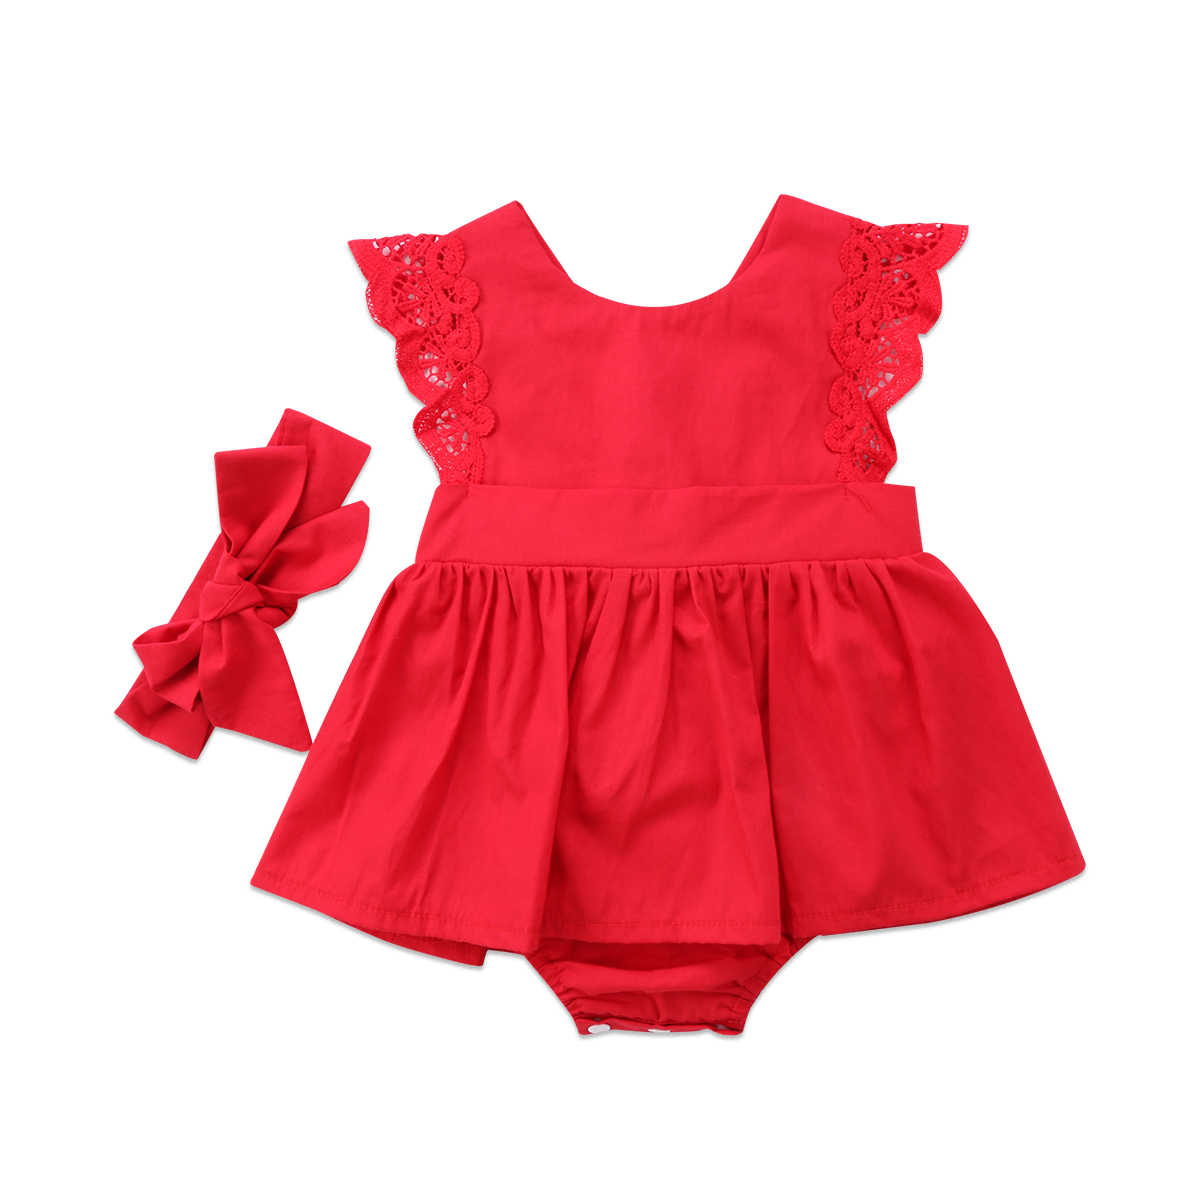 New Arrival Baby Girls Christmas Ruffle Romper Red Lace Dress Sister Princess Kids Xmas Party Dresses Cotton Newborn Costume